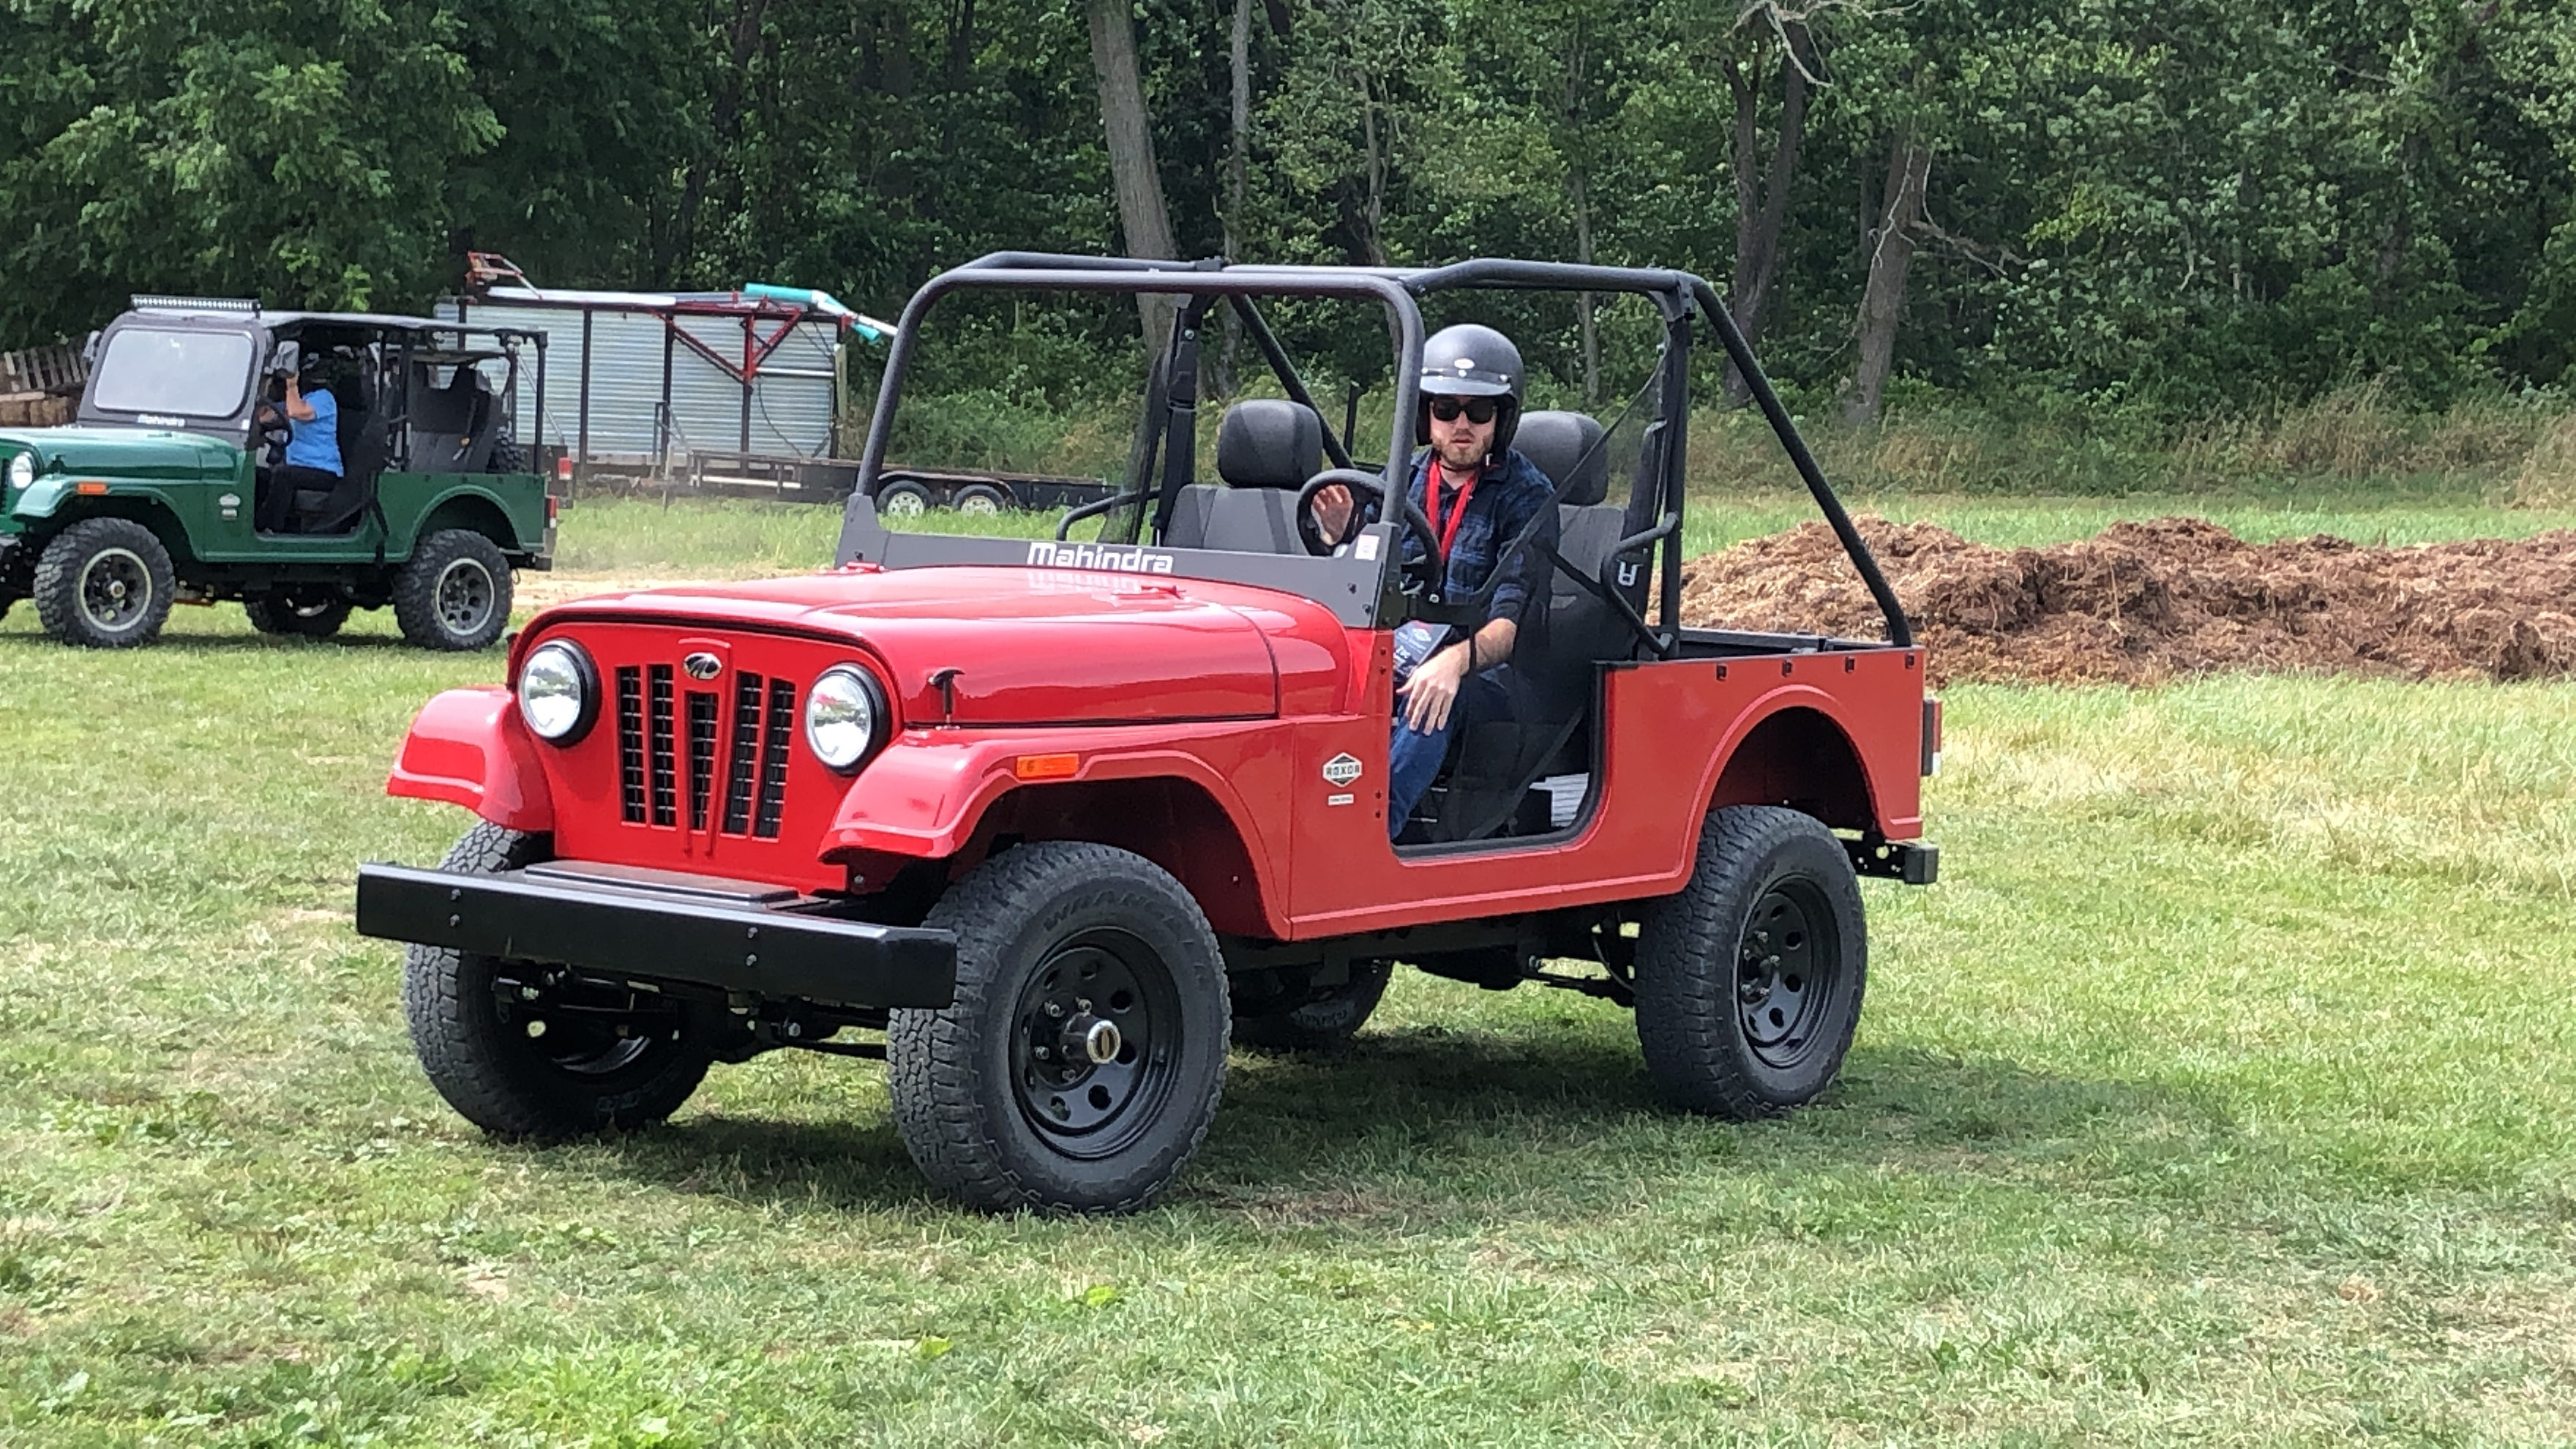 Does this ATV look too much like a Jeep? A federal judge thinks so, and wants to ban it